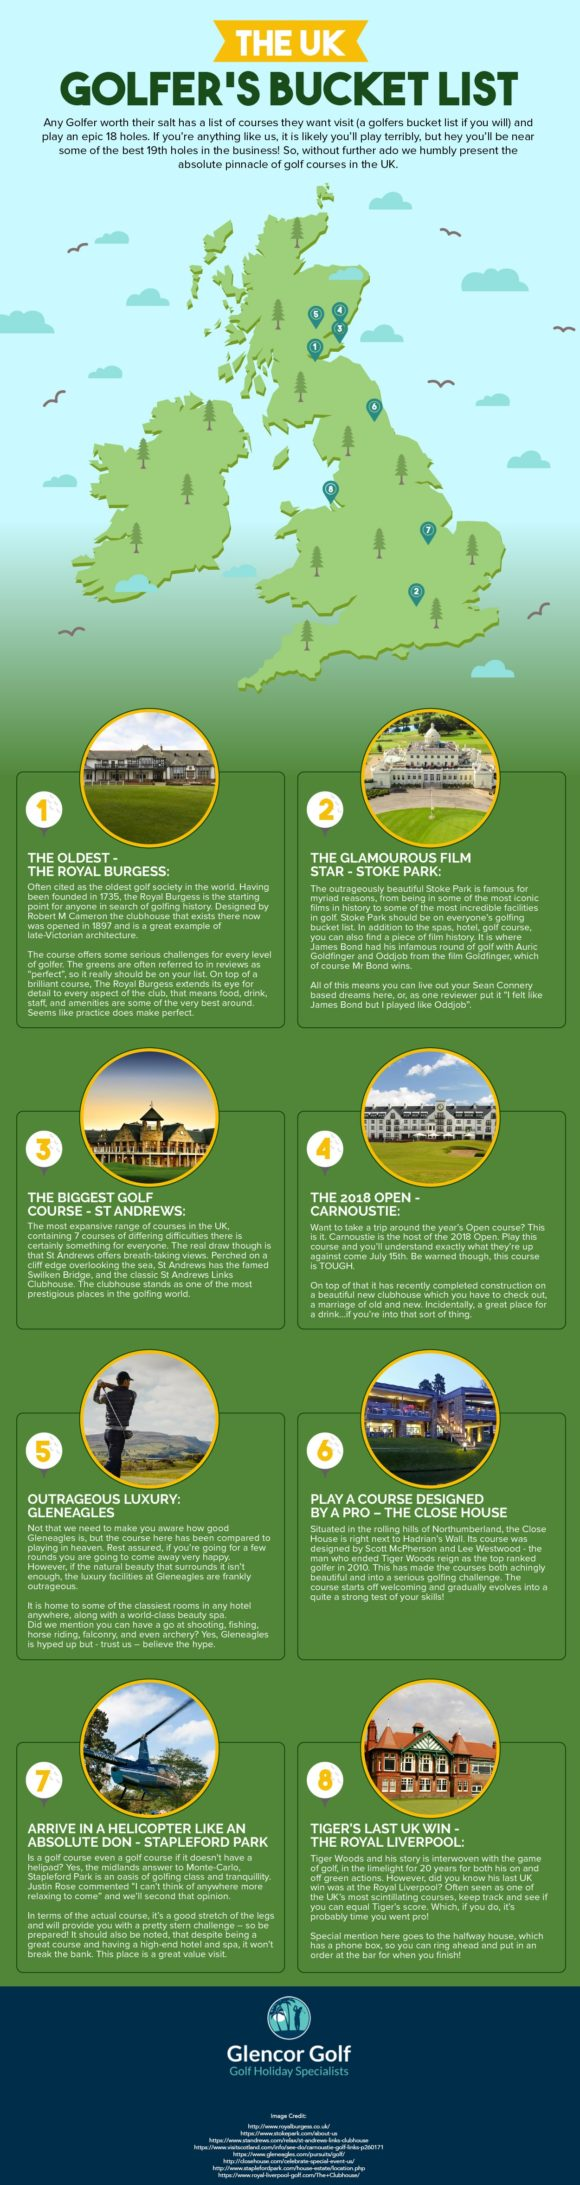 Golfers Bucket List 01 1